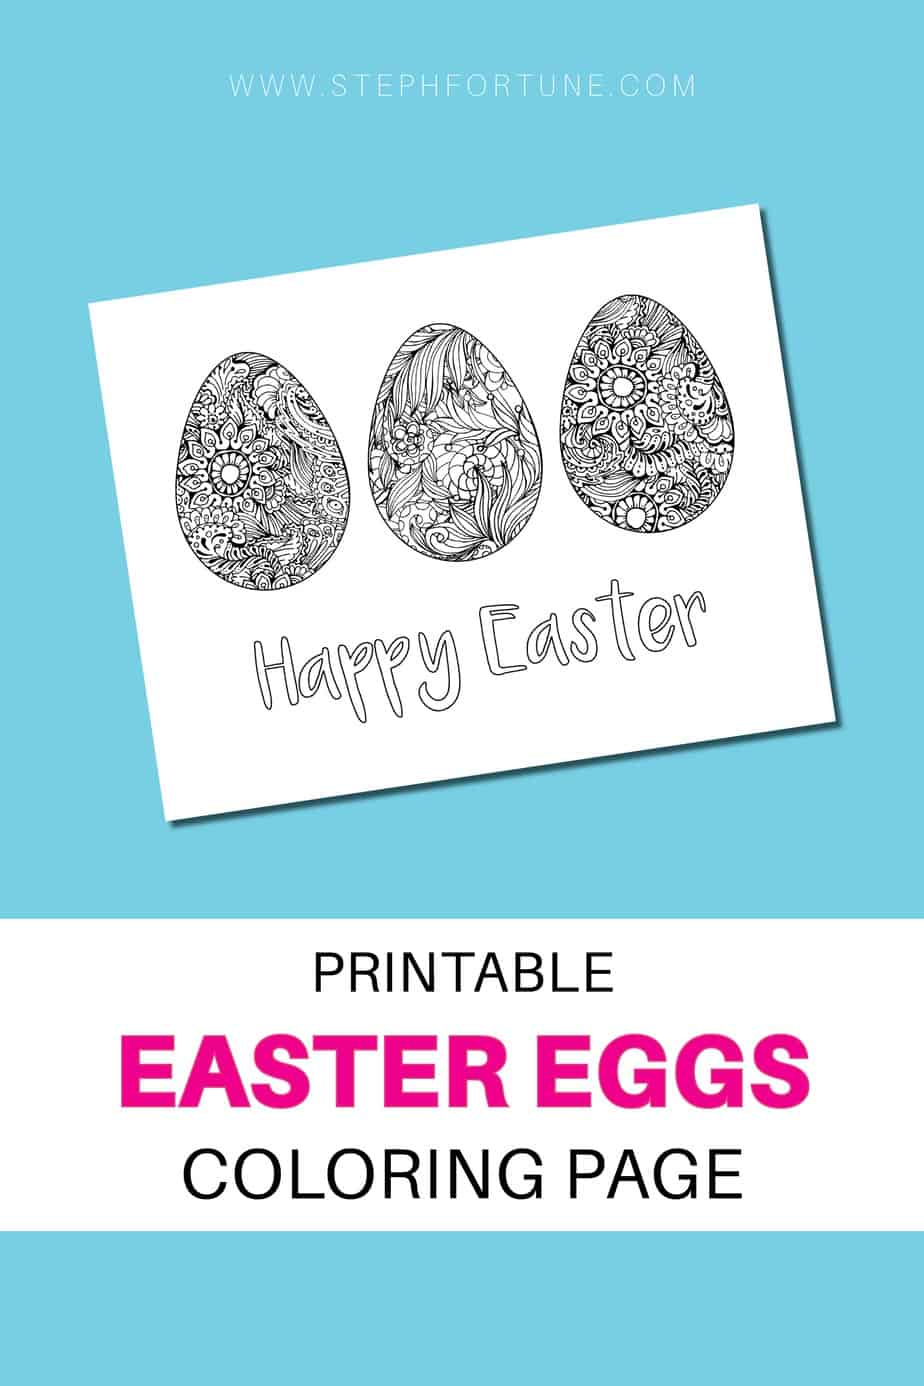 Printable Easter Eggs coloring page